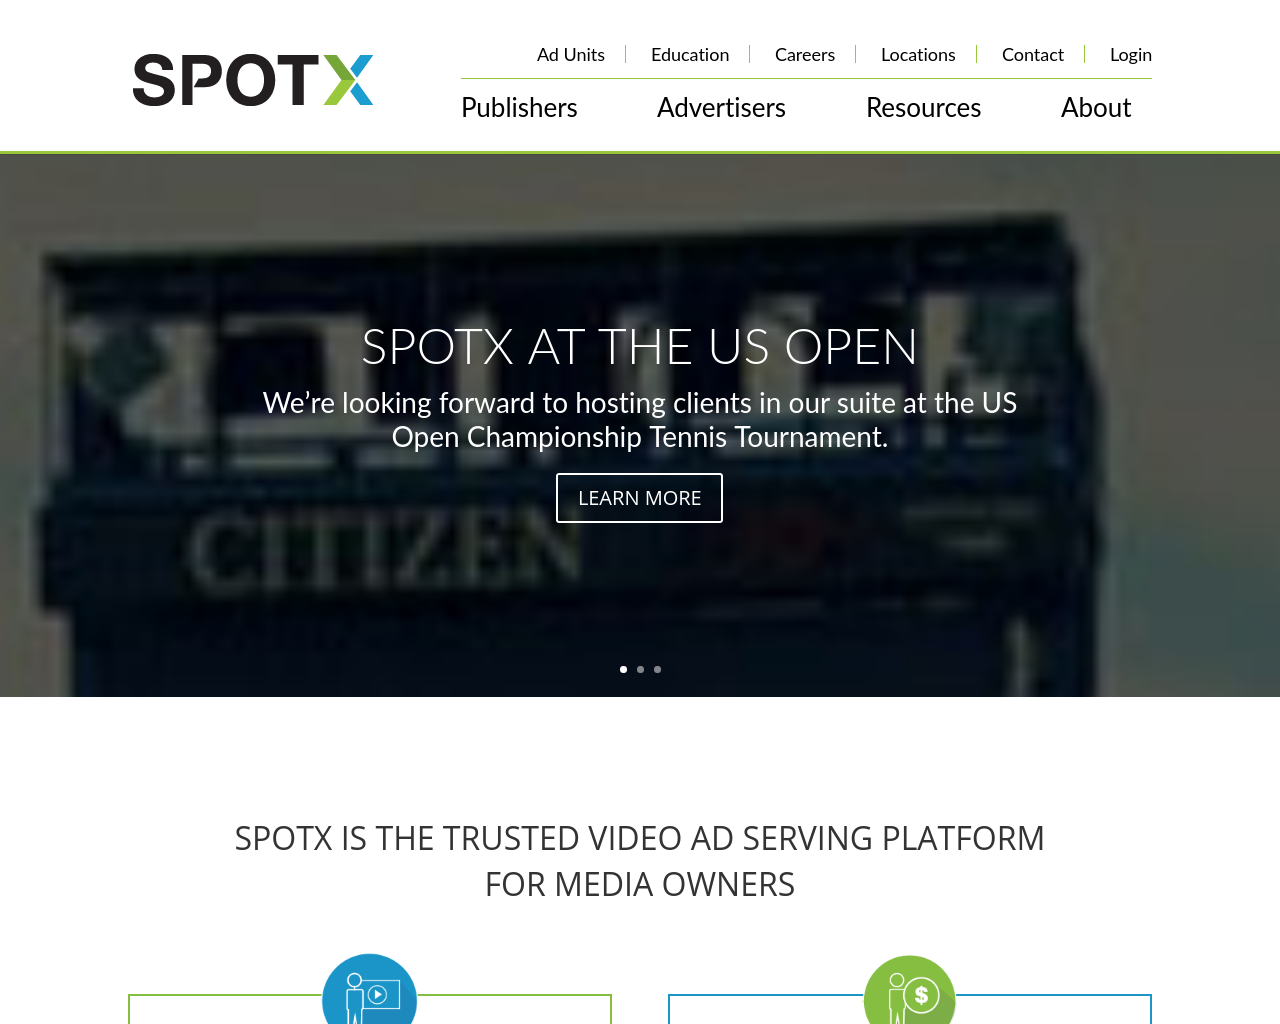 SpotX-Advertising-Reviews-Pricing